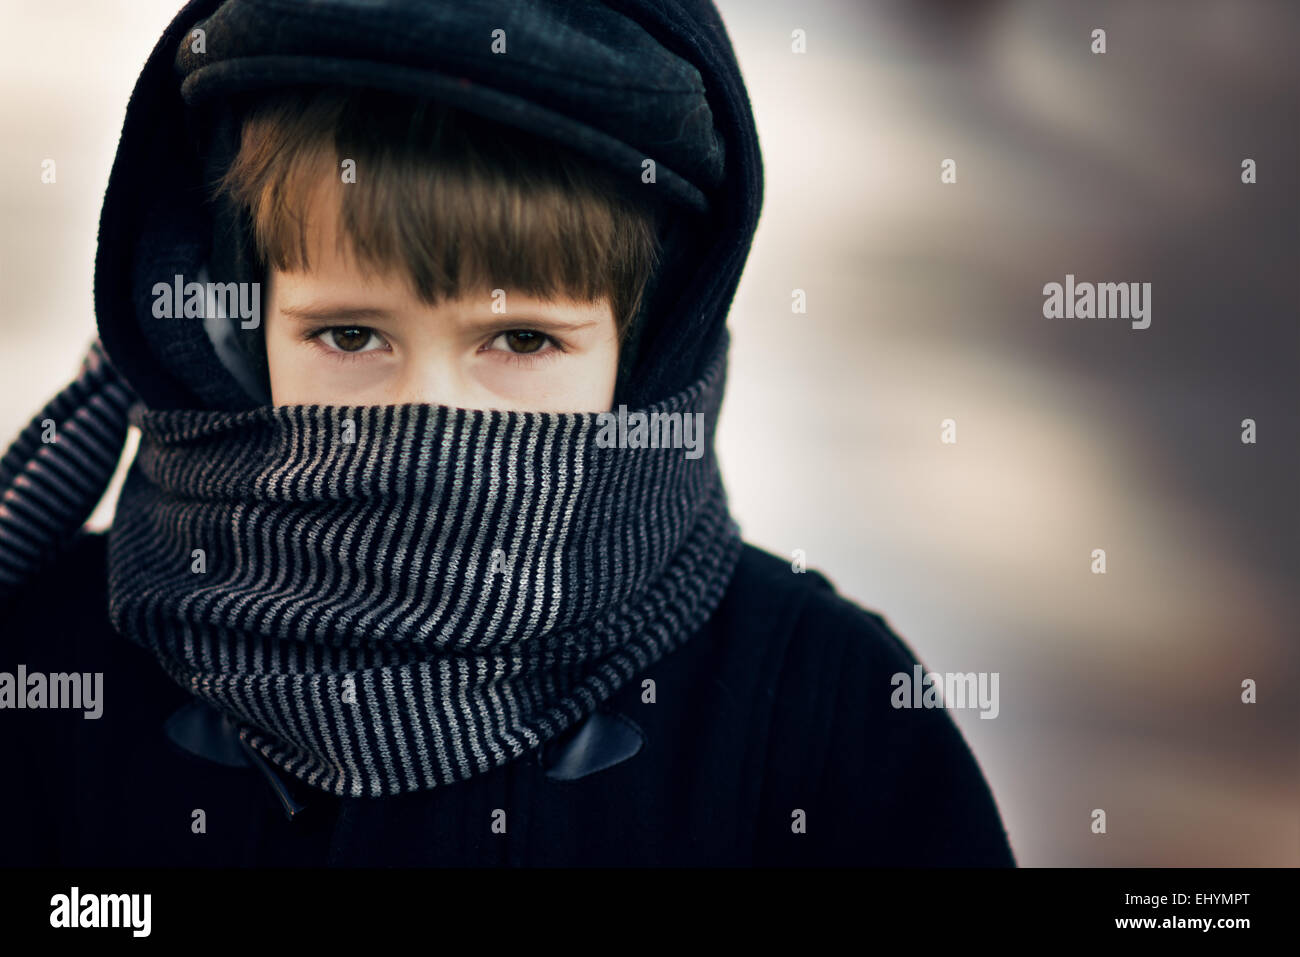 Boy wearing a scarf around his face - Stock Image